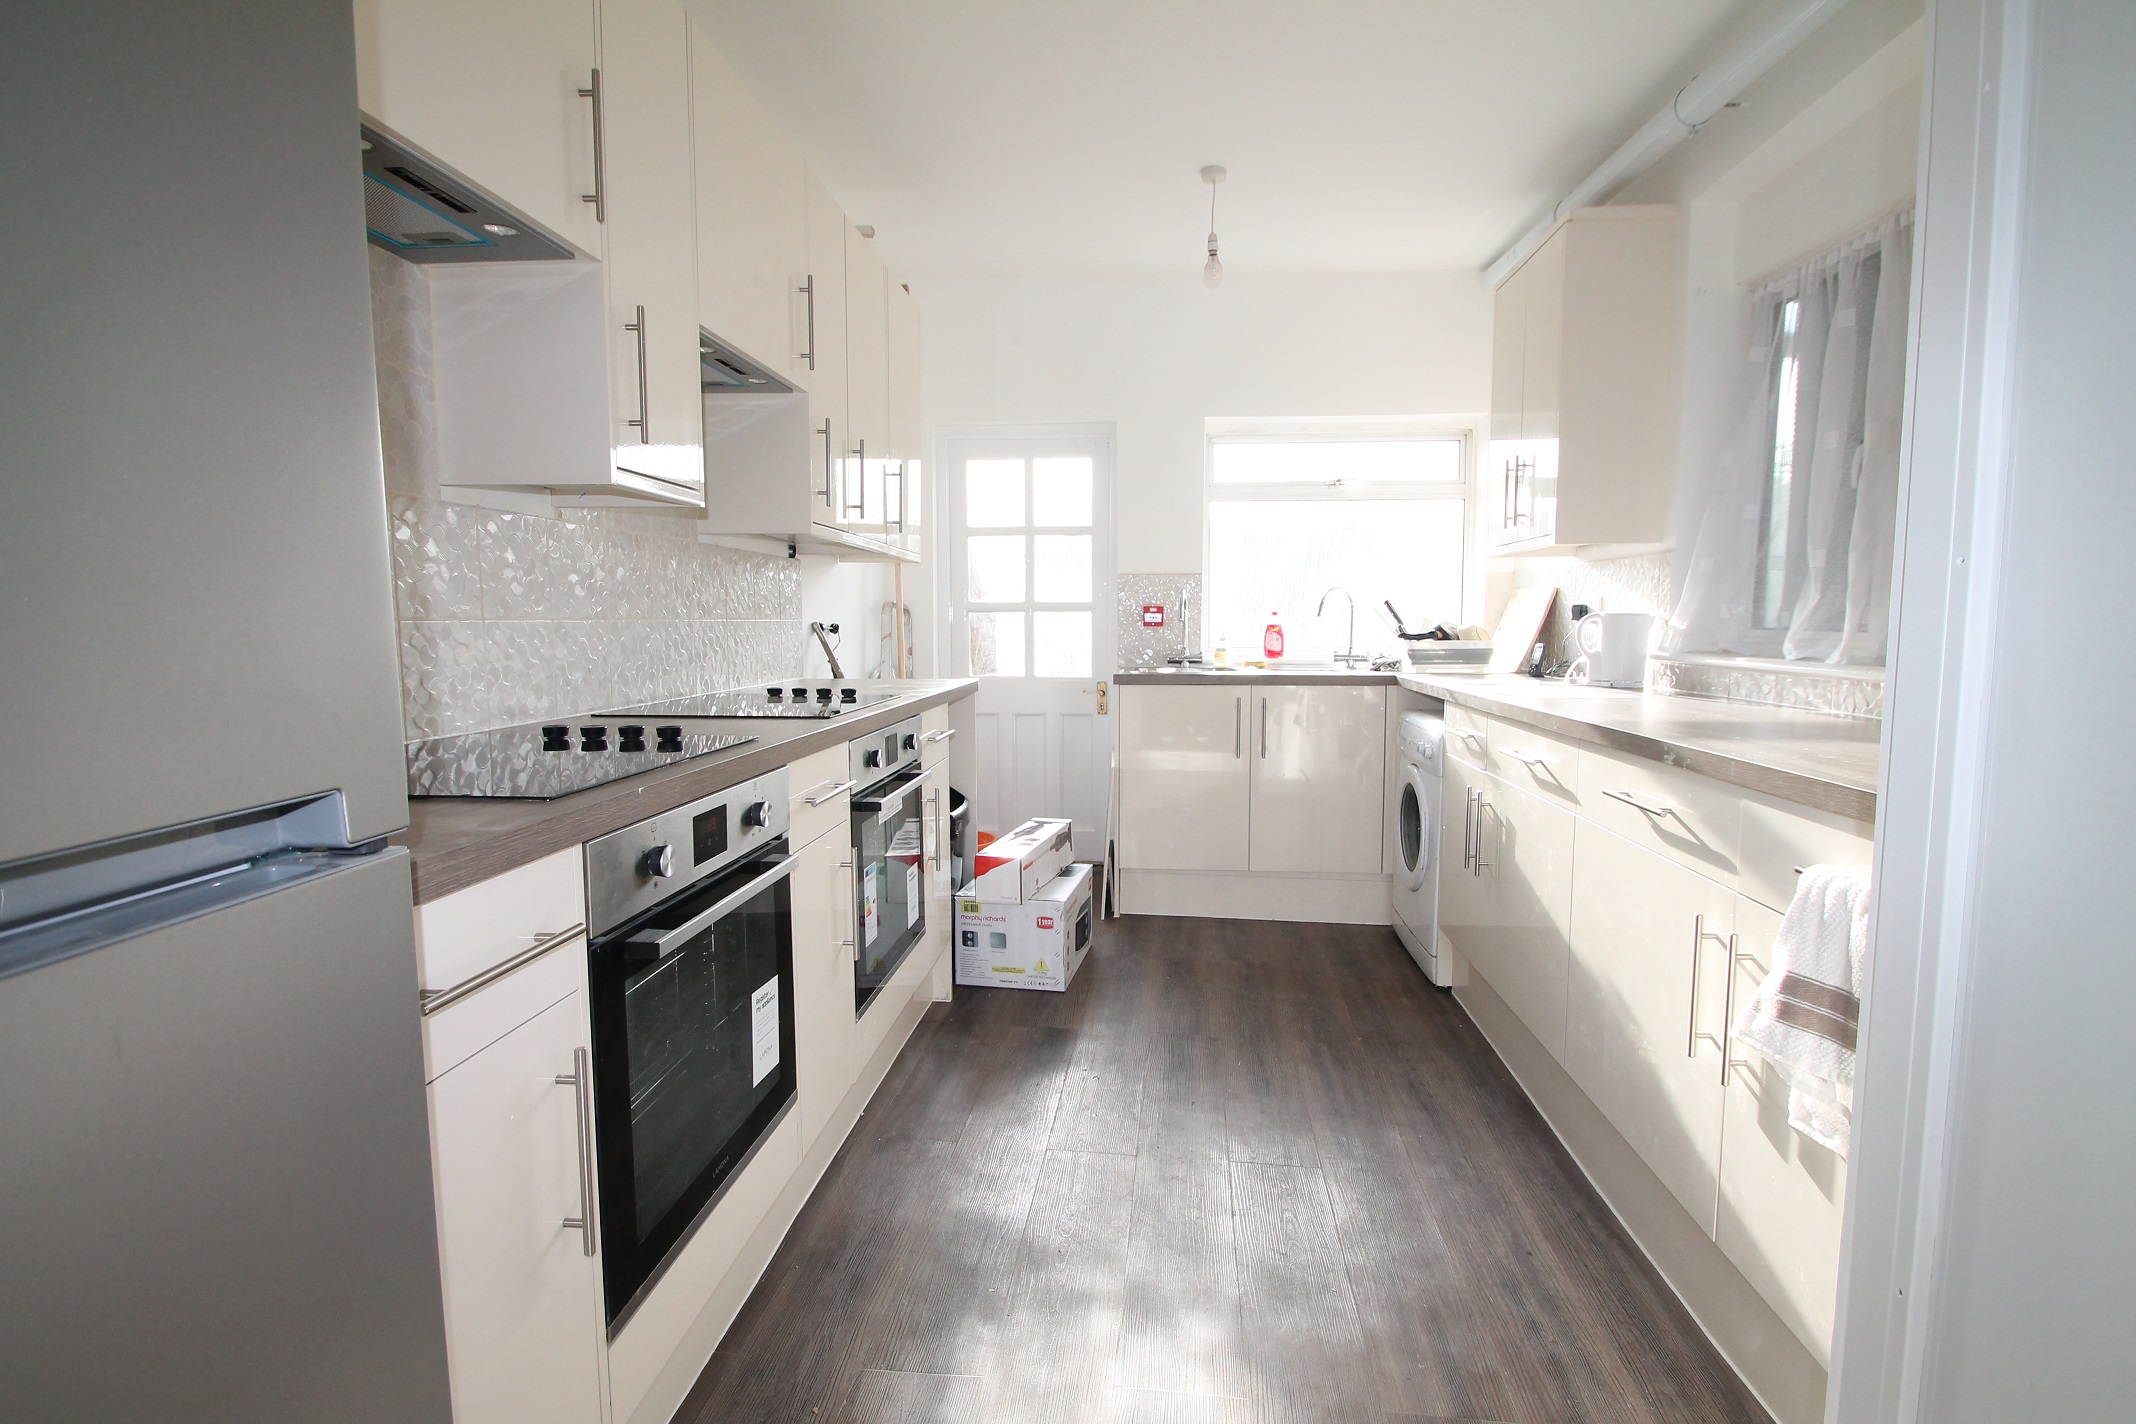 Bellclose Road - £886 per week (available from September 2019)